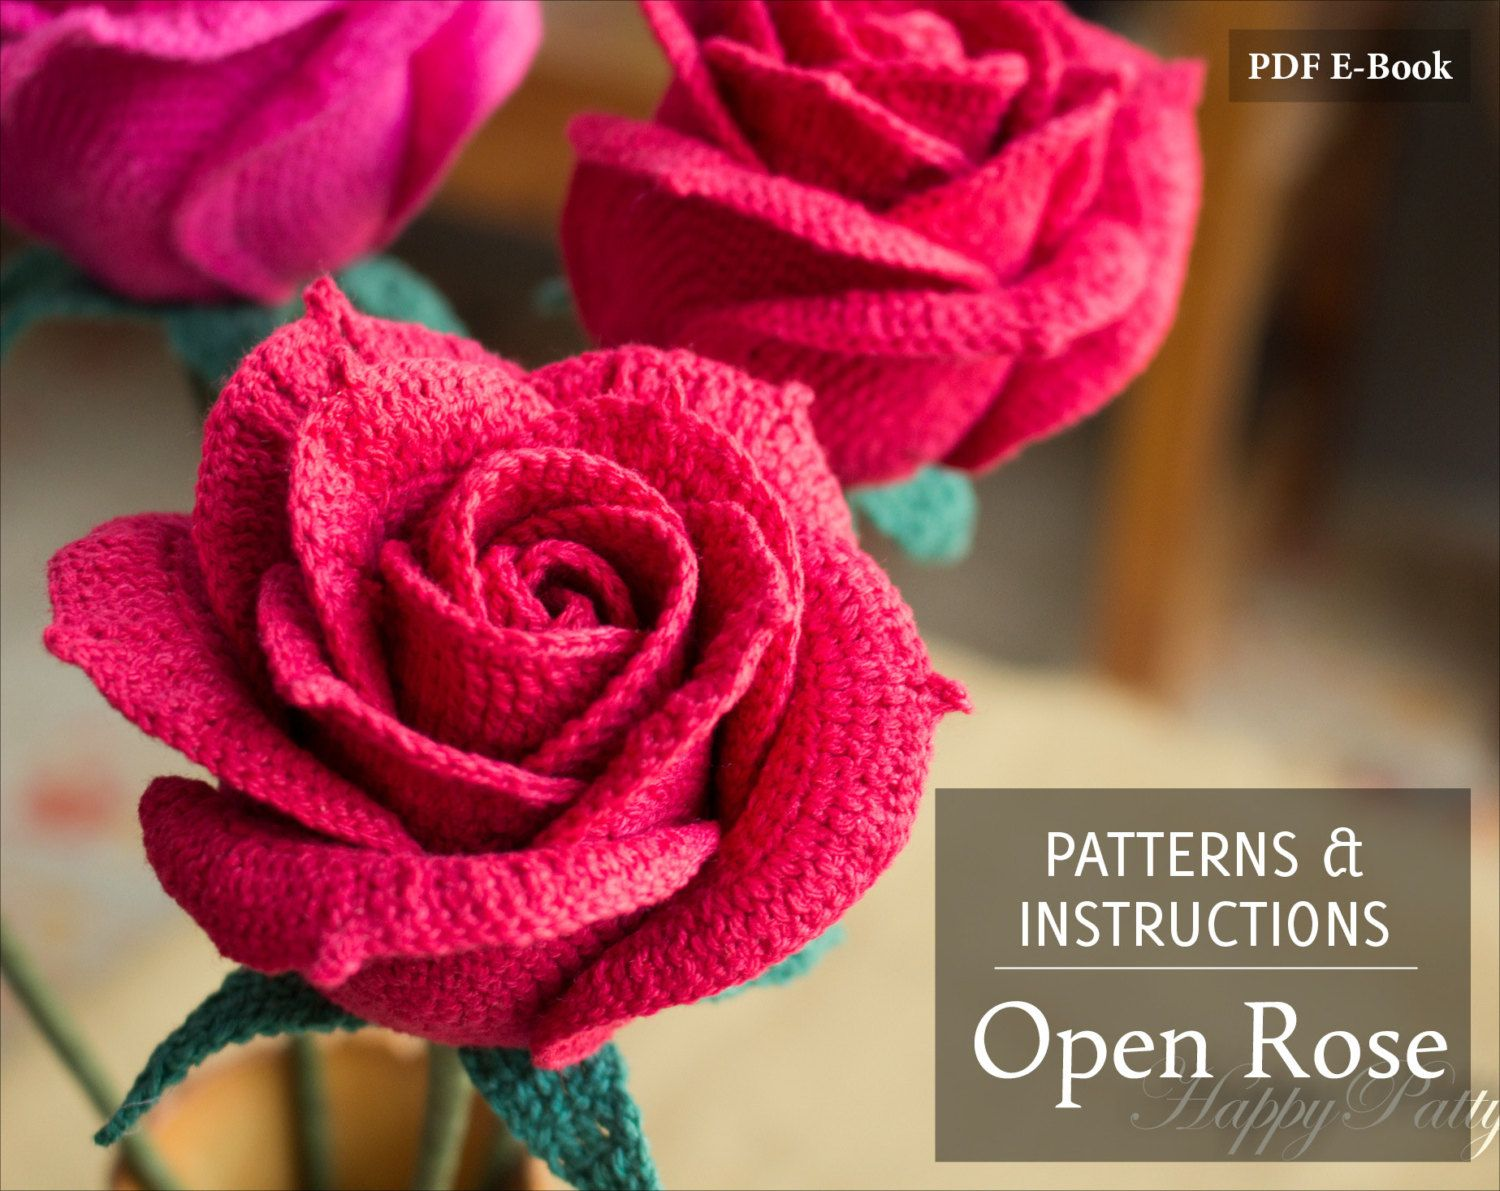 Crochet flower pattern open crochet rose pattern for wedding crochet flower pattern open crochet rose pattern for wedding bouquets and home decoration flower bankloansurffo Images